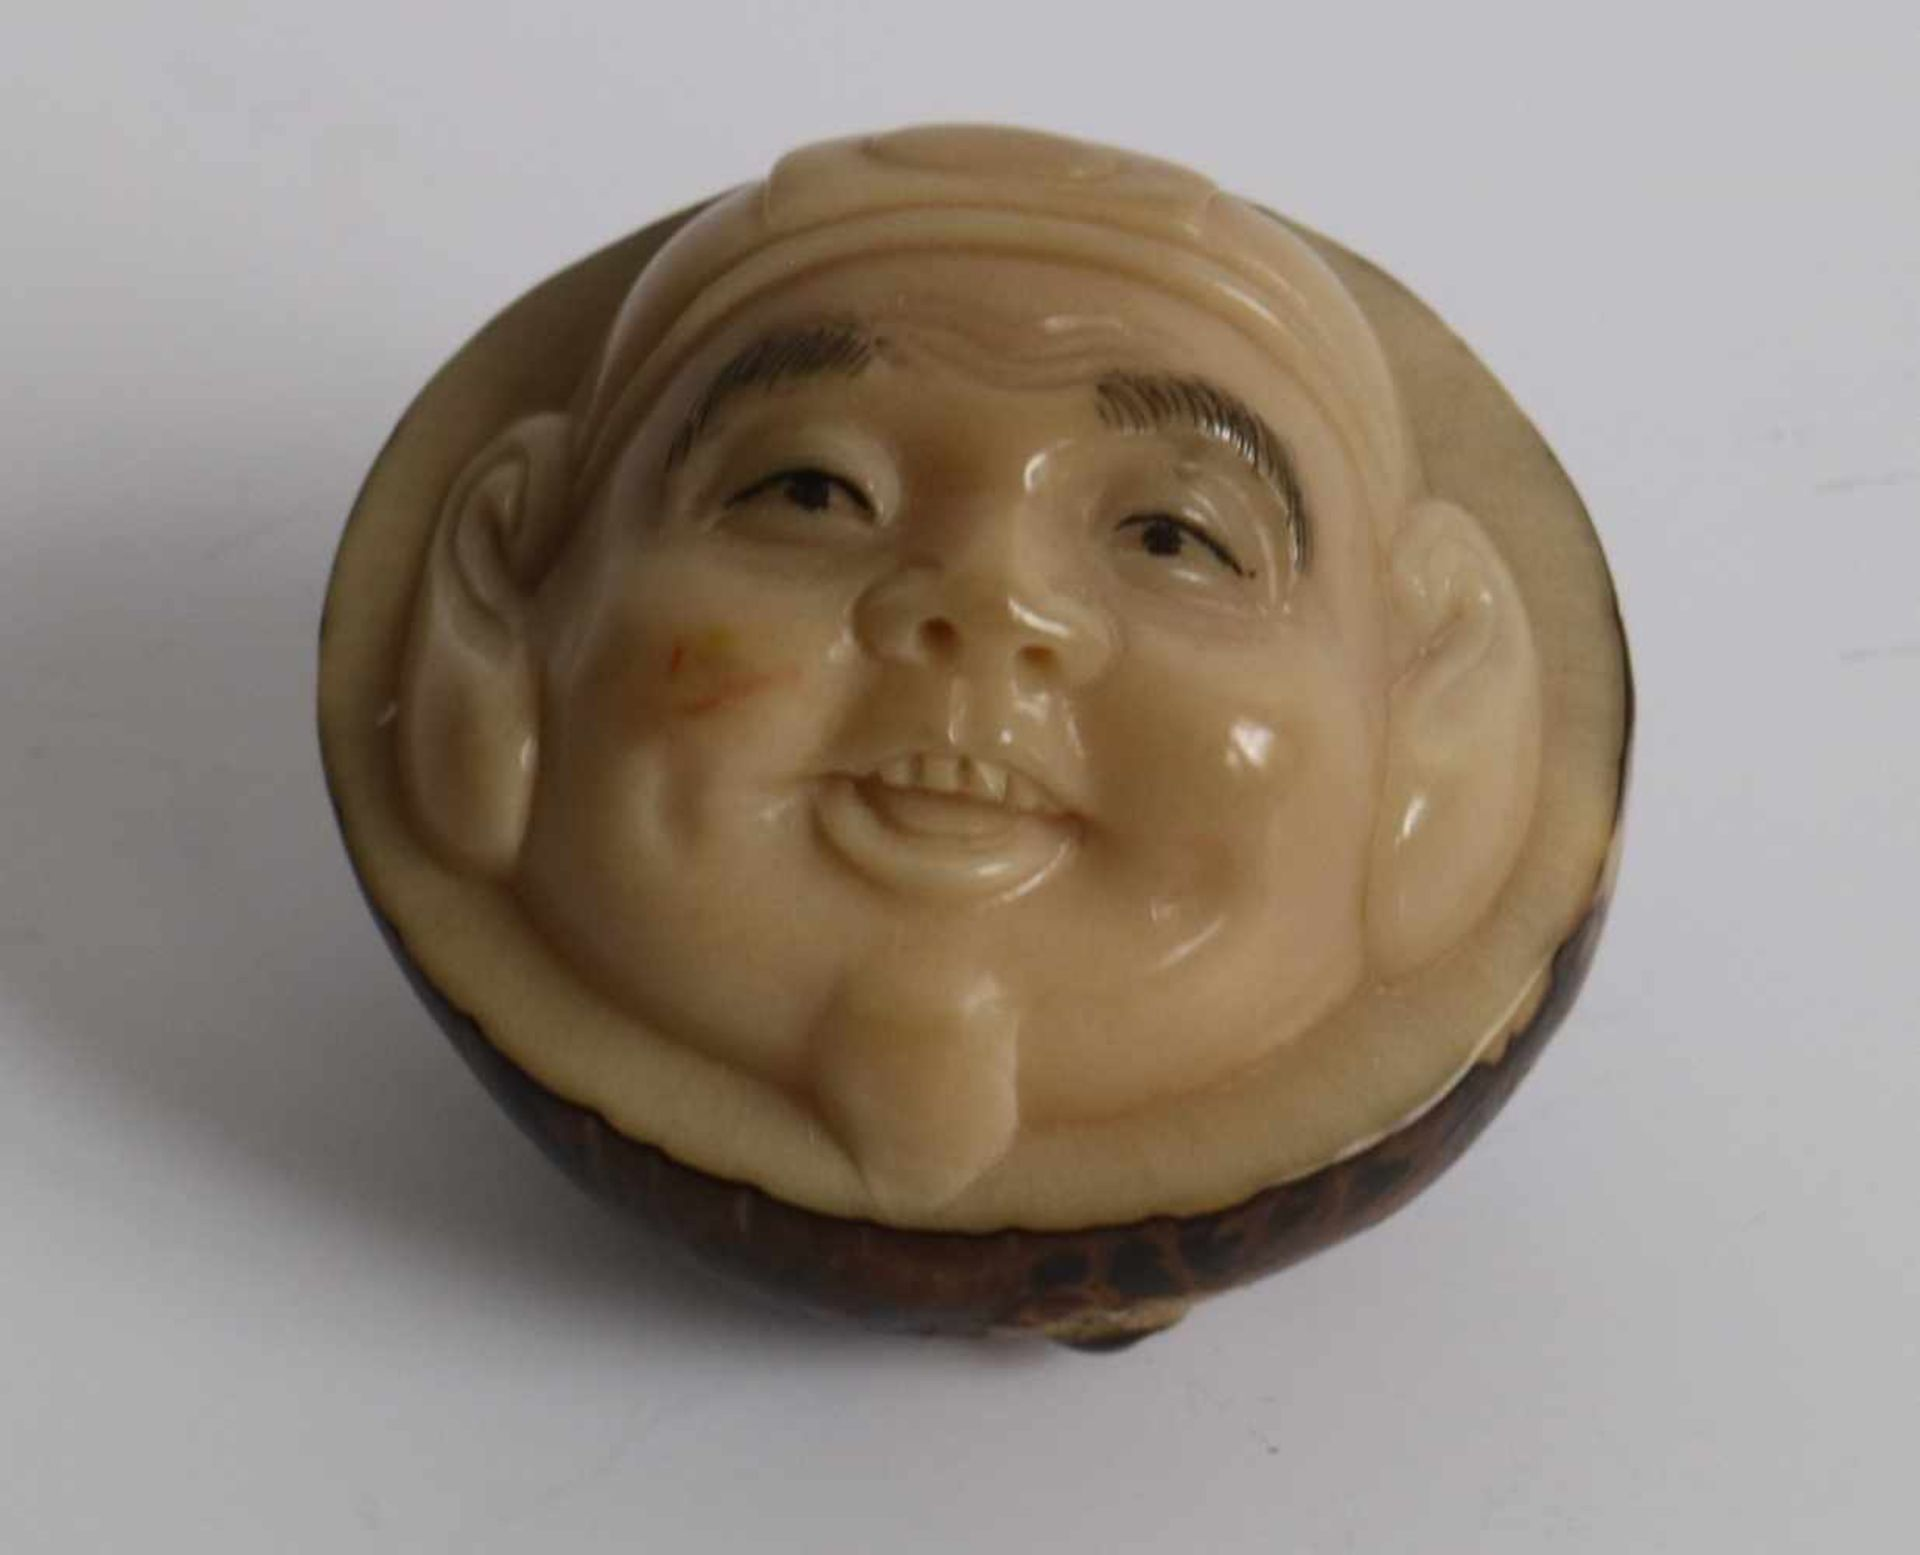 Los 473 - Carved netsuke depicting a Hotei, Made of tagua nut Japan 20th century L 4,2 cm private collection